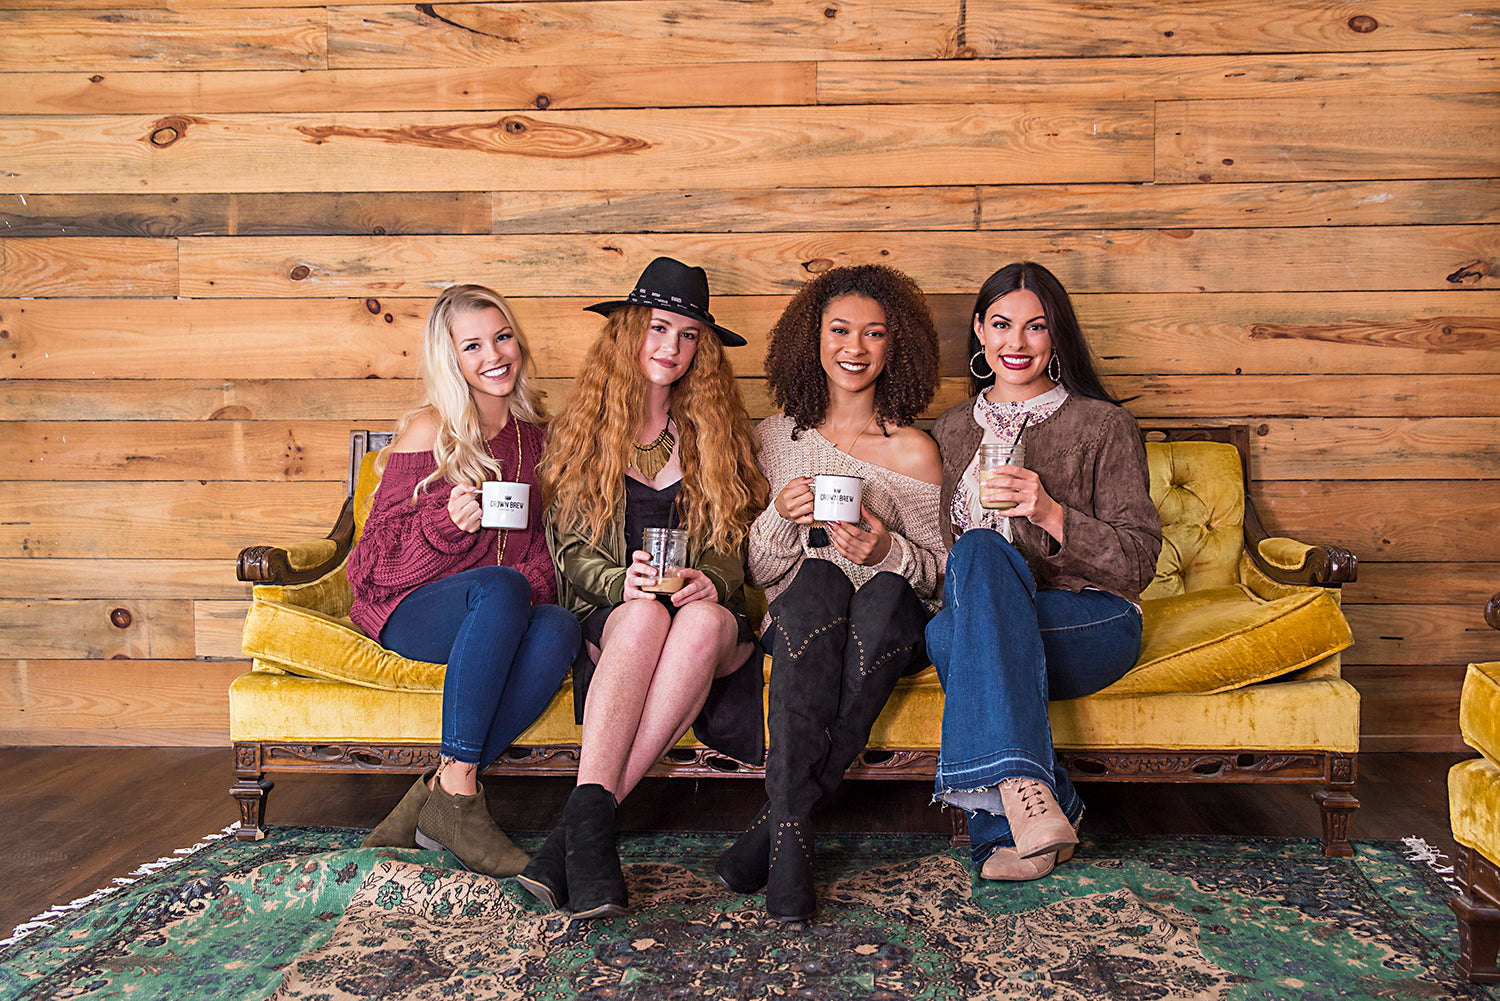 Eccentrics Boutique models at Crown Brew Coffee Company in Carterville, Illinois. Trendiest businesses in Southern Illinois.